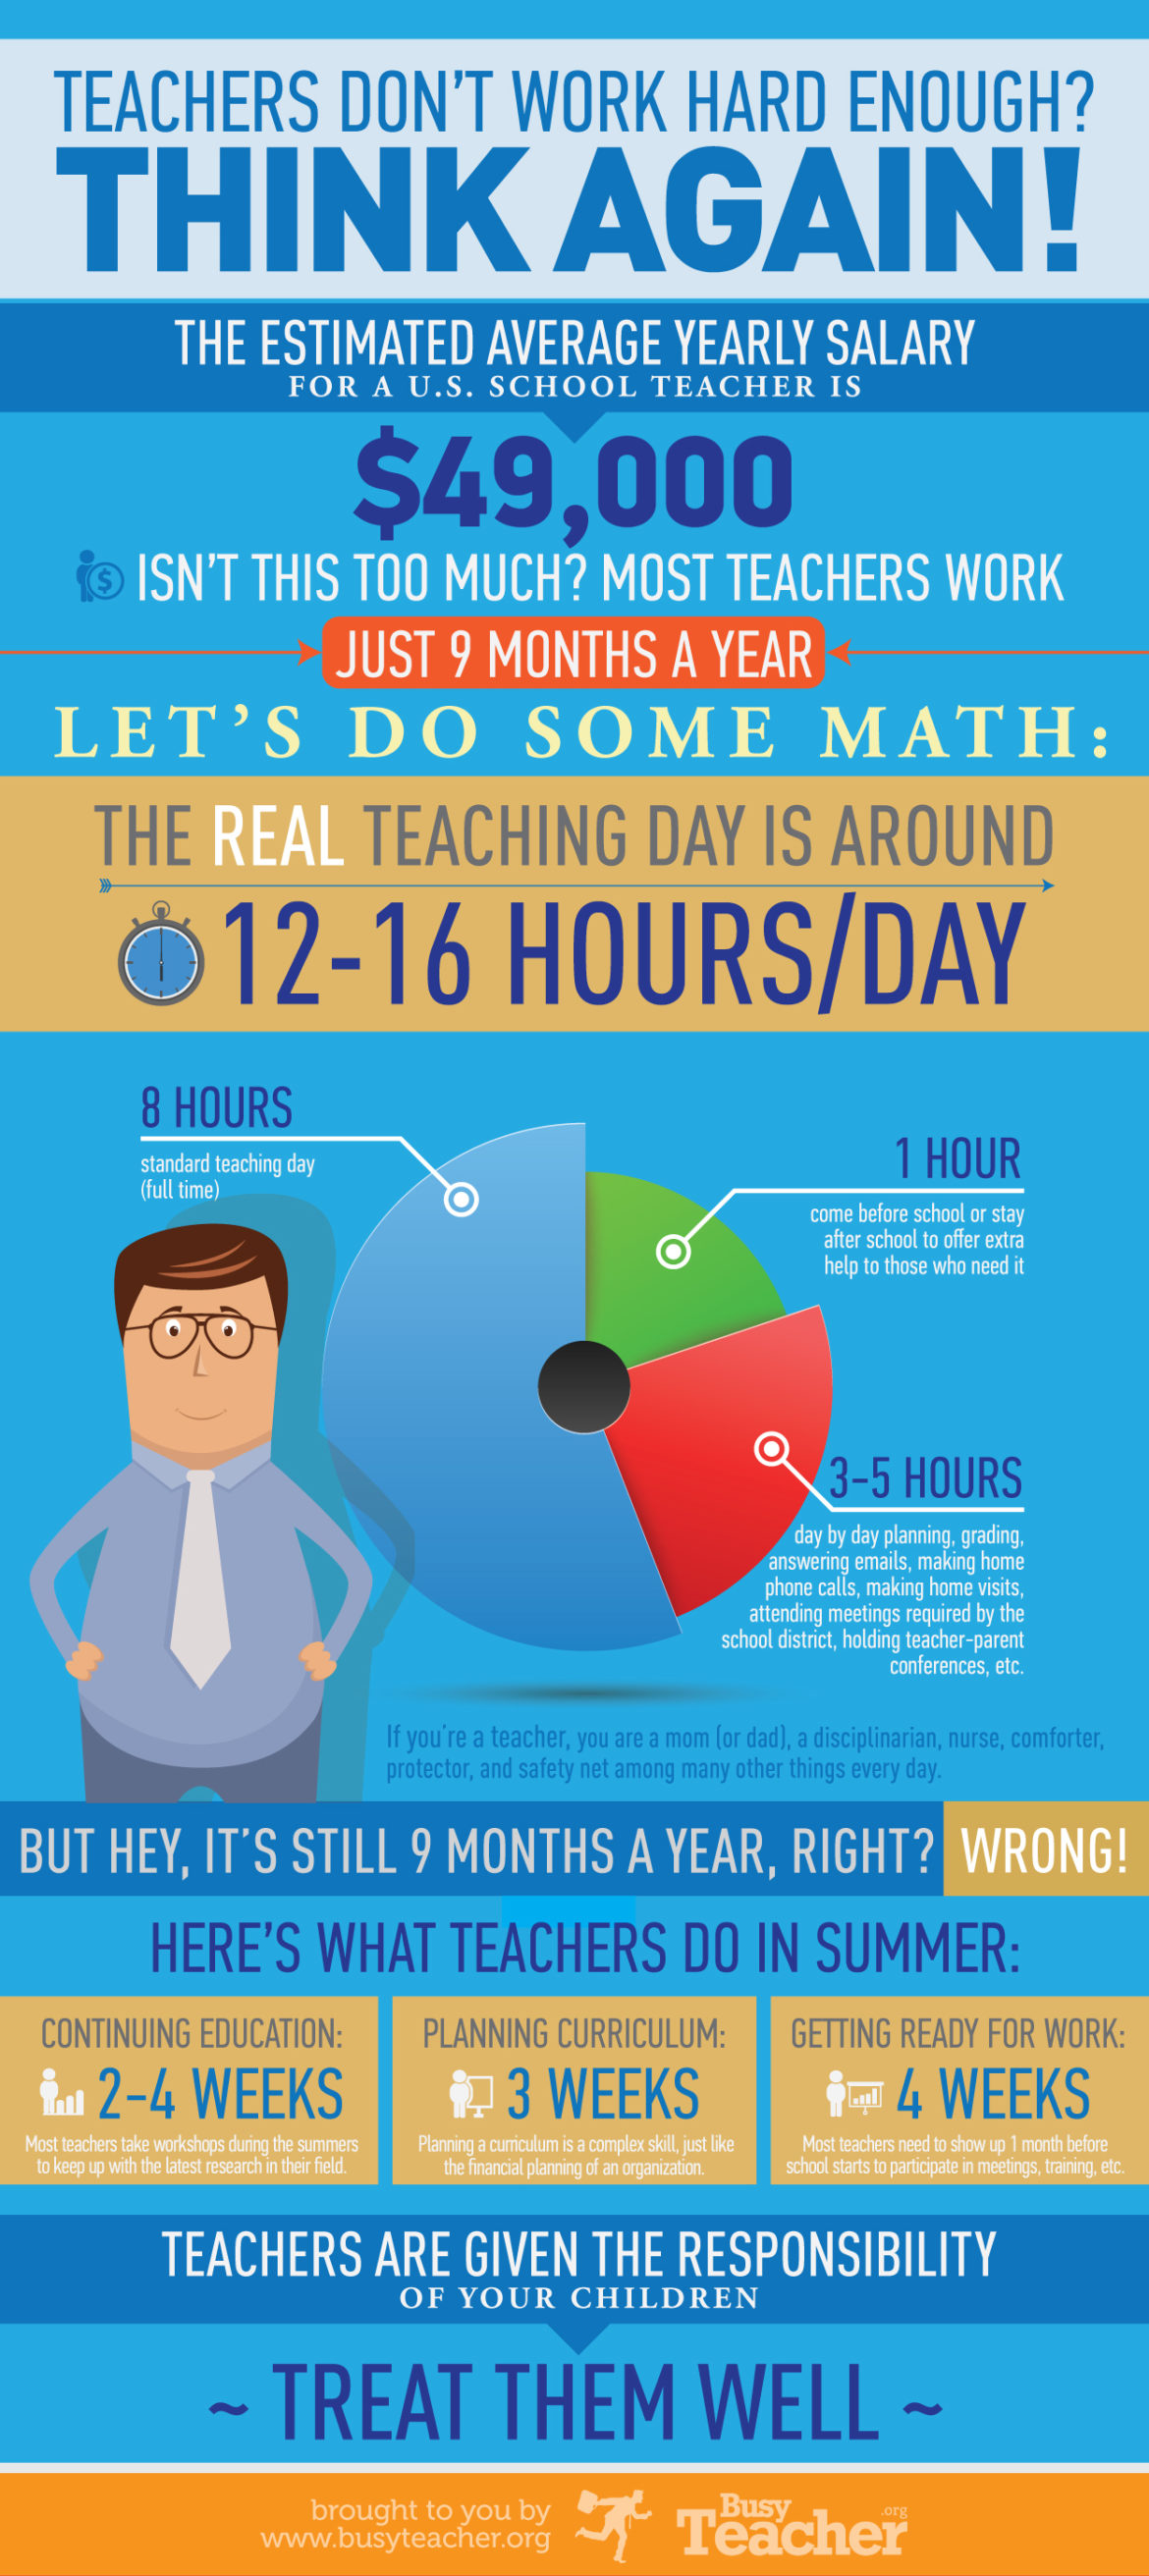 "In 2013, an infographic titled ""Teachers Don't Work Hard Enough? Think Again!"" created by BusyTeacher.org made waves when it suggested the ""real teaching day"" encompasses more than class time. In total, the infographic estimates the teaching day to be 12 to 16 hours in length."